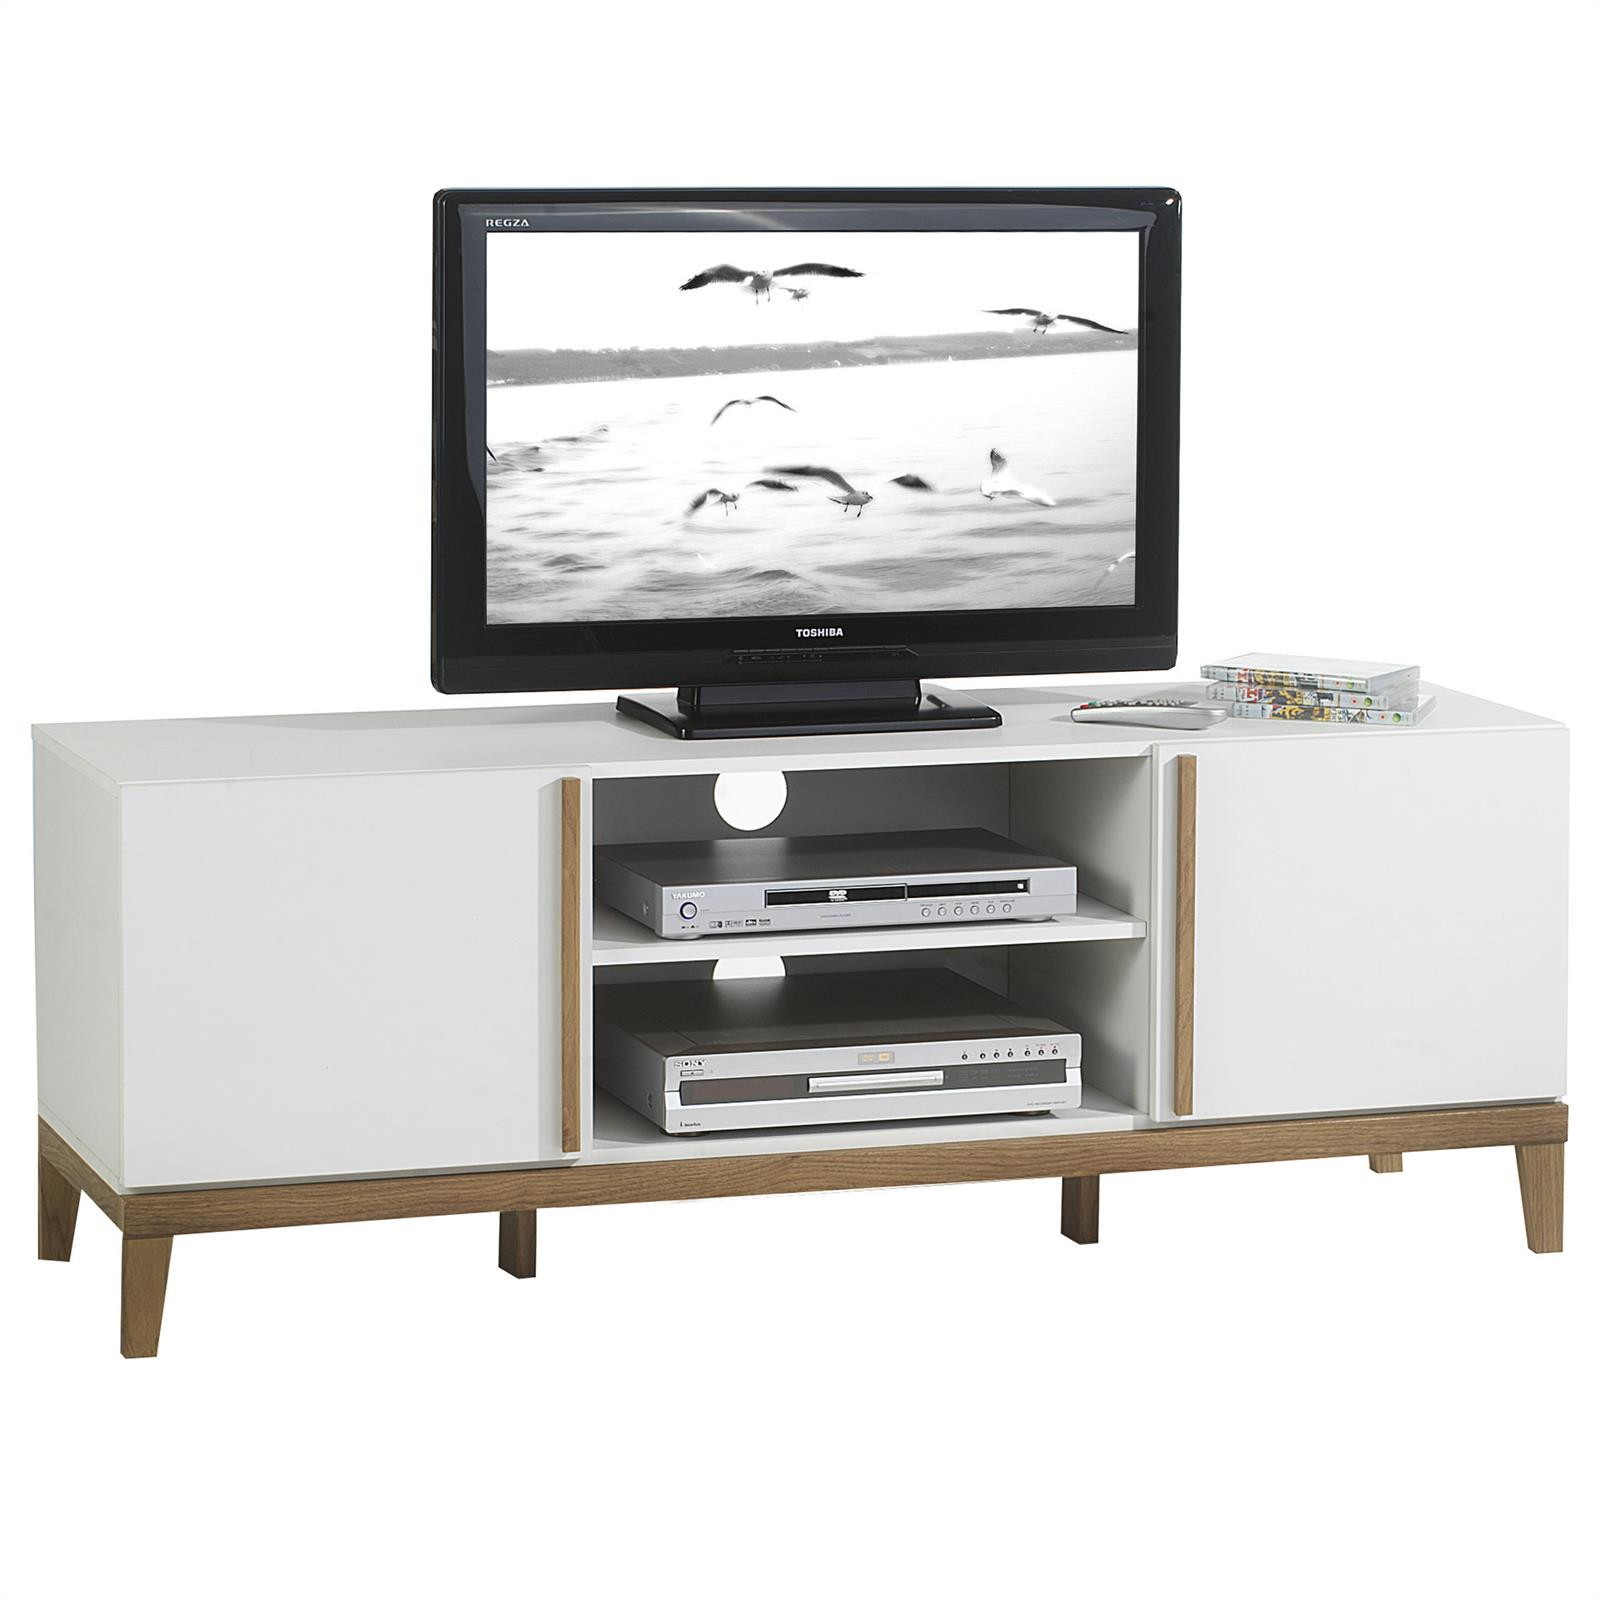 meuble tv riga 2 niches 2 portes blanc et bois mobil meubles. Black Bedroom Furniture Sets. Home Design Ideas